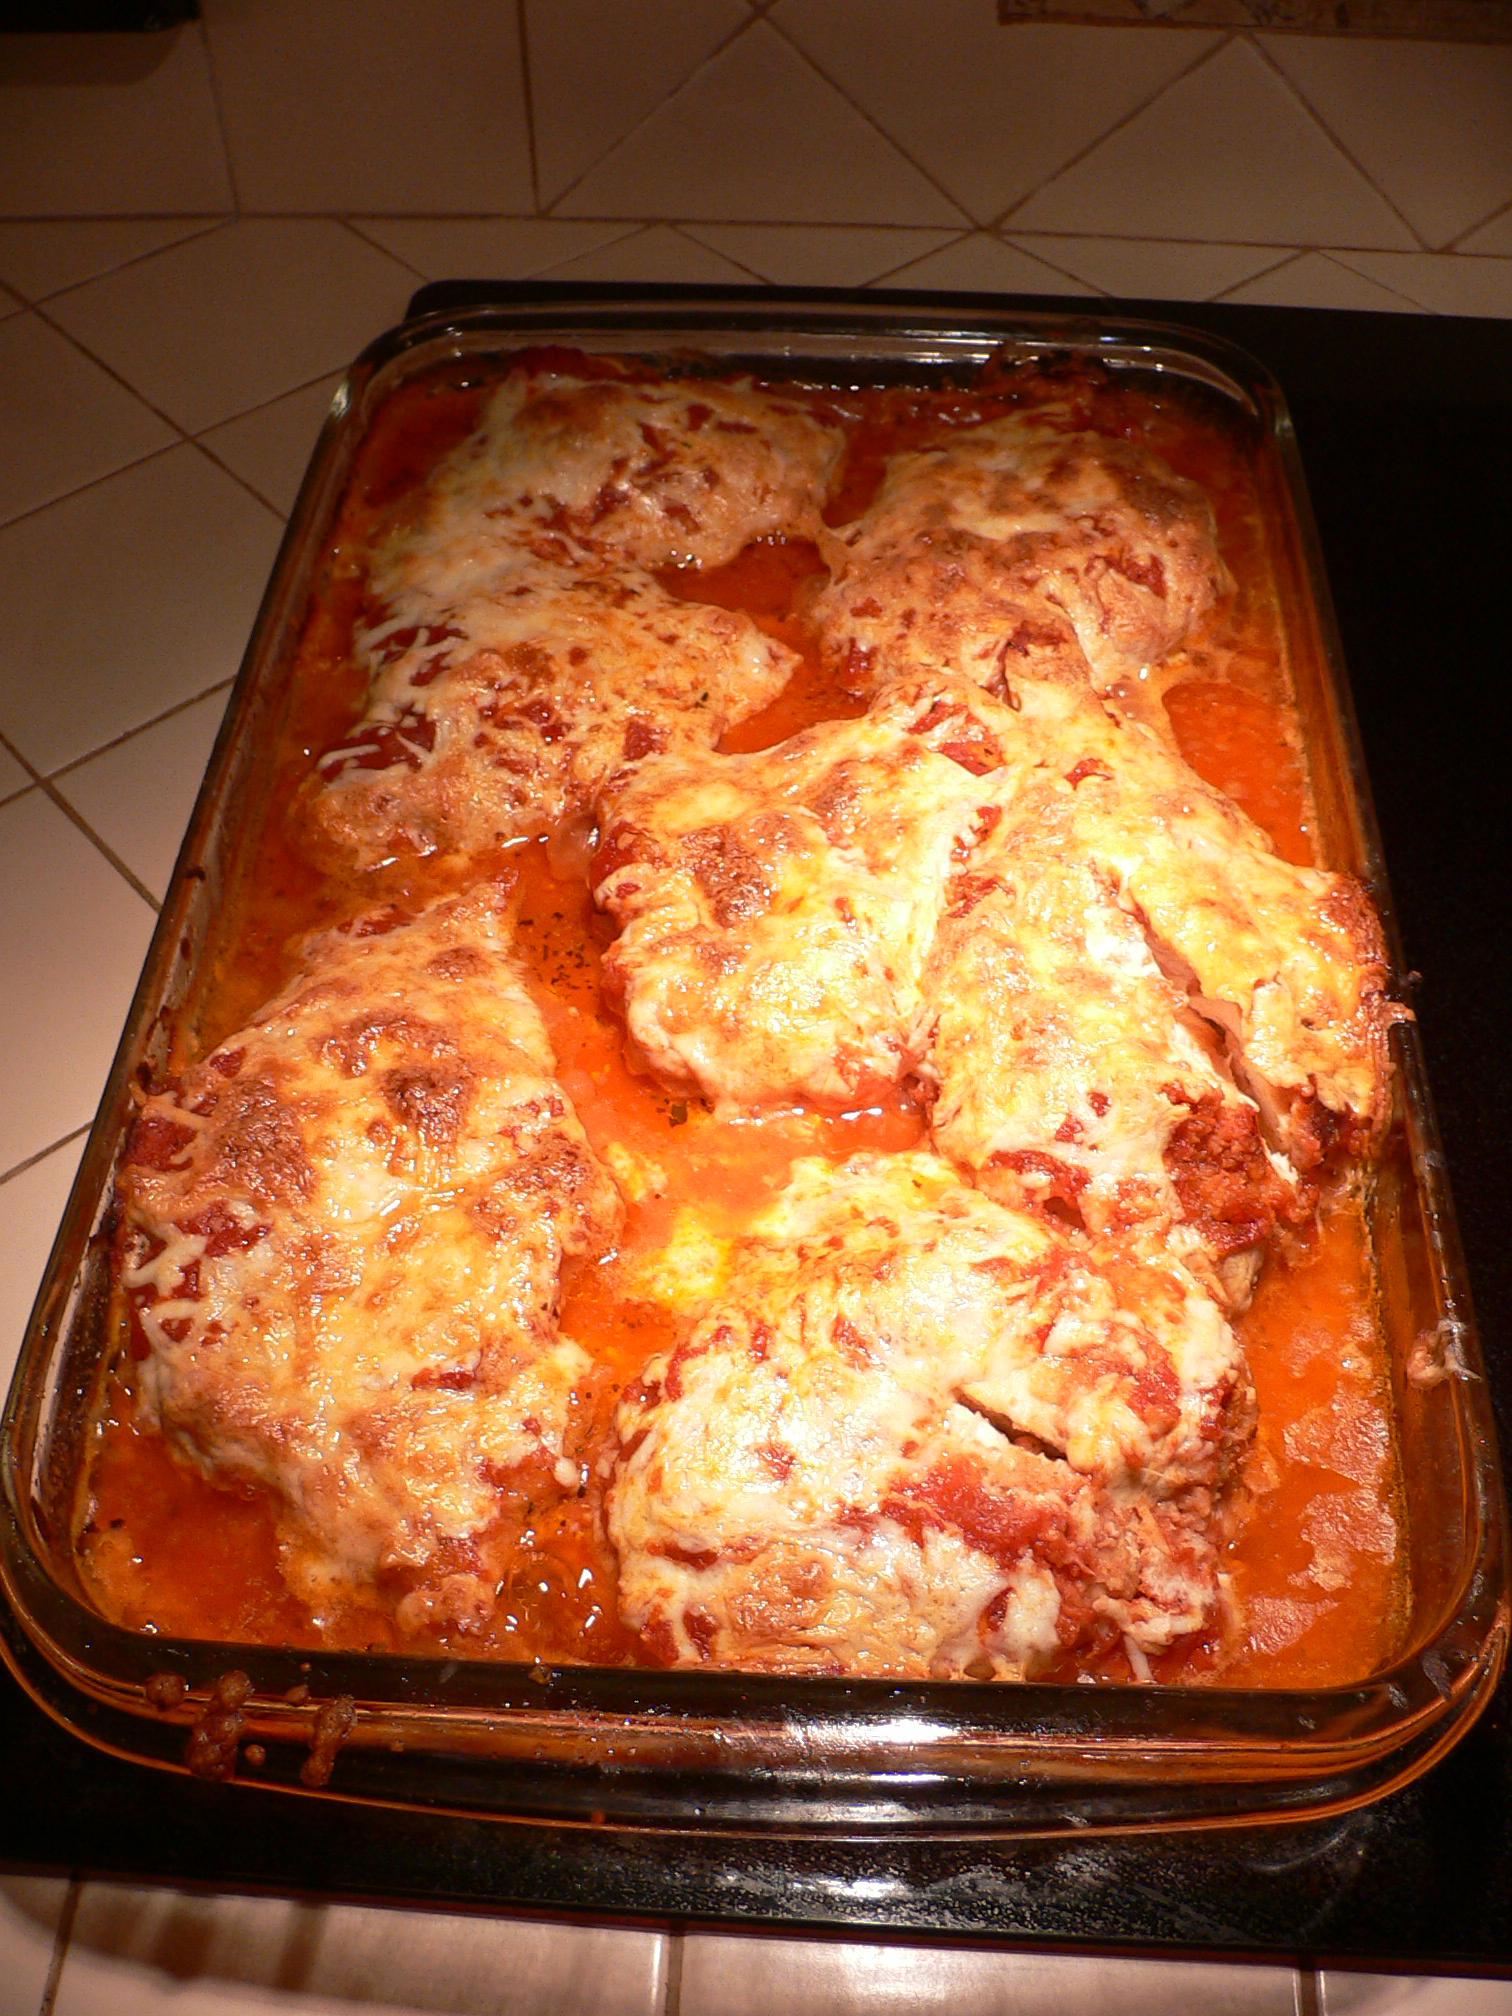 File:Chicken parmesan.jpg - Wikipedia